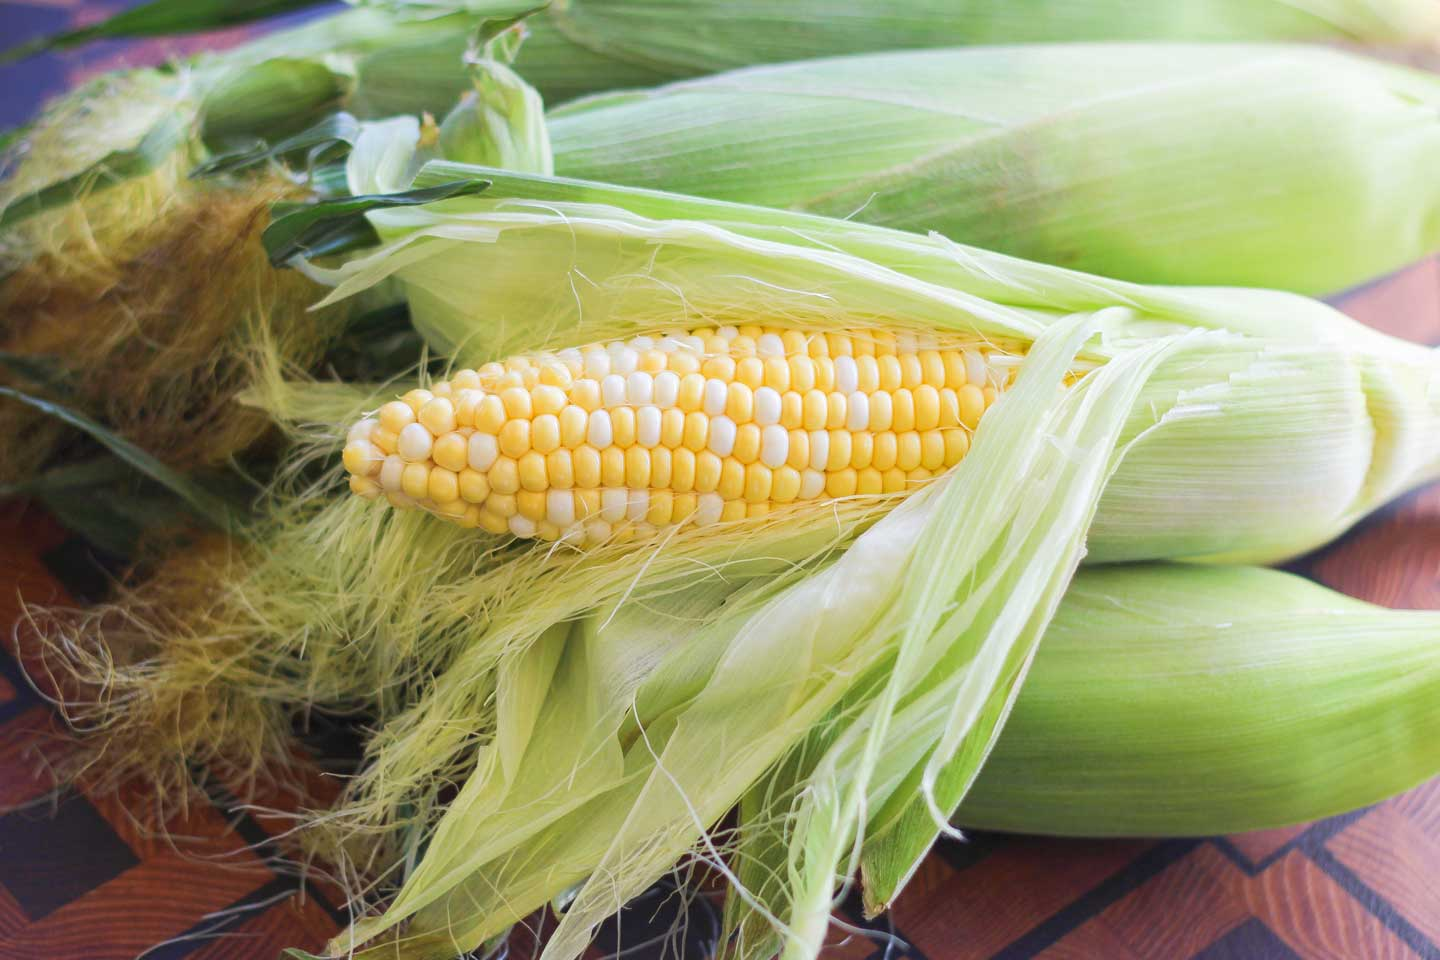 Several ears of fresh corn, still in the husks, with one ear peeled open to reveal the kernels.